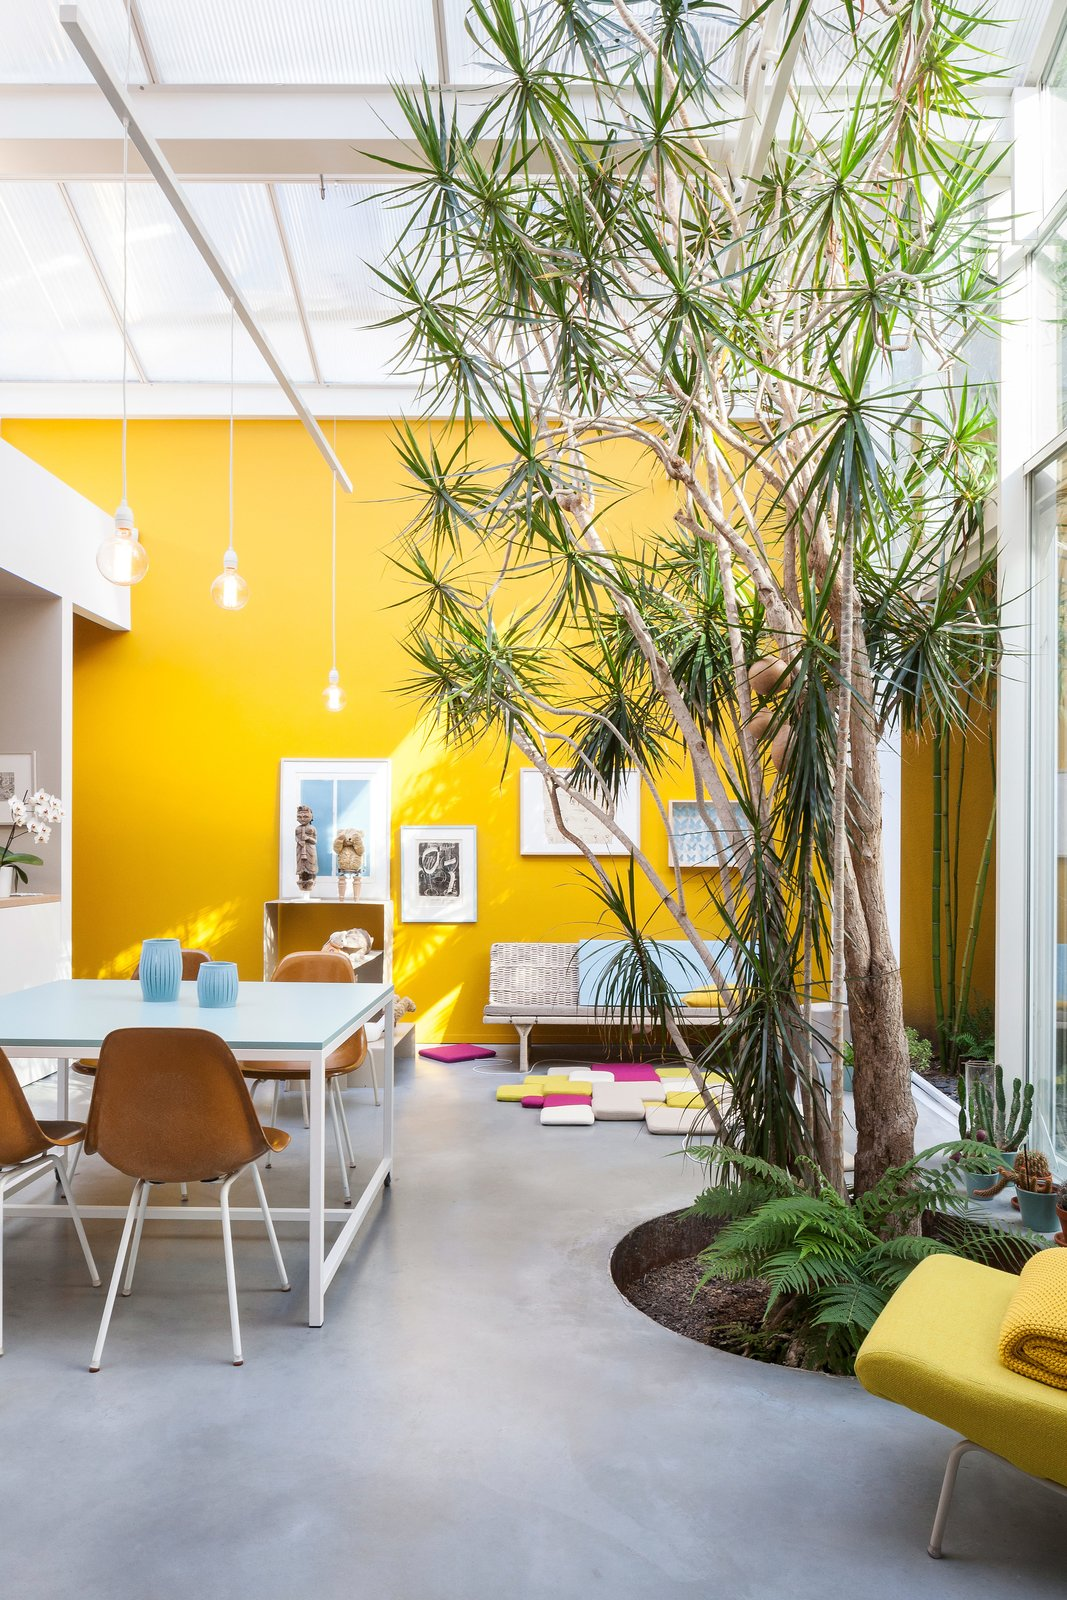 A cozy kitchen-dinning area in the studio and home of an Antwerp artist couple with Eames chairs, a second hand sofa and mustard-yellow walls.  Photo 10 of 10 in 9 Small Spaces With  Color